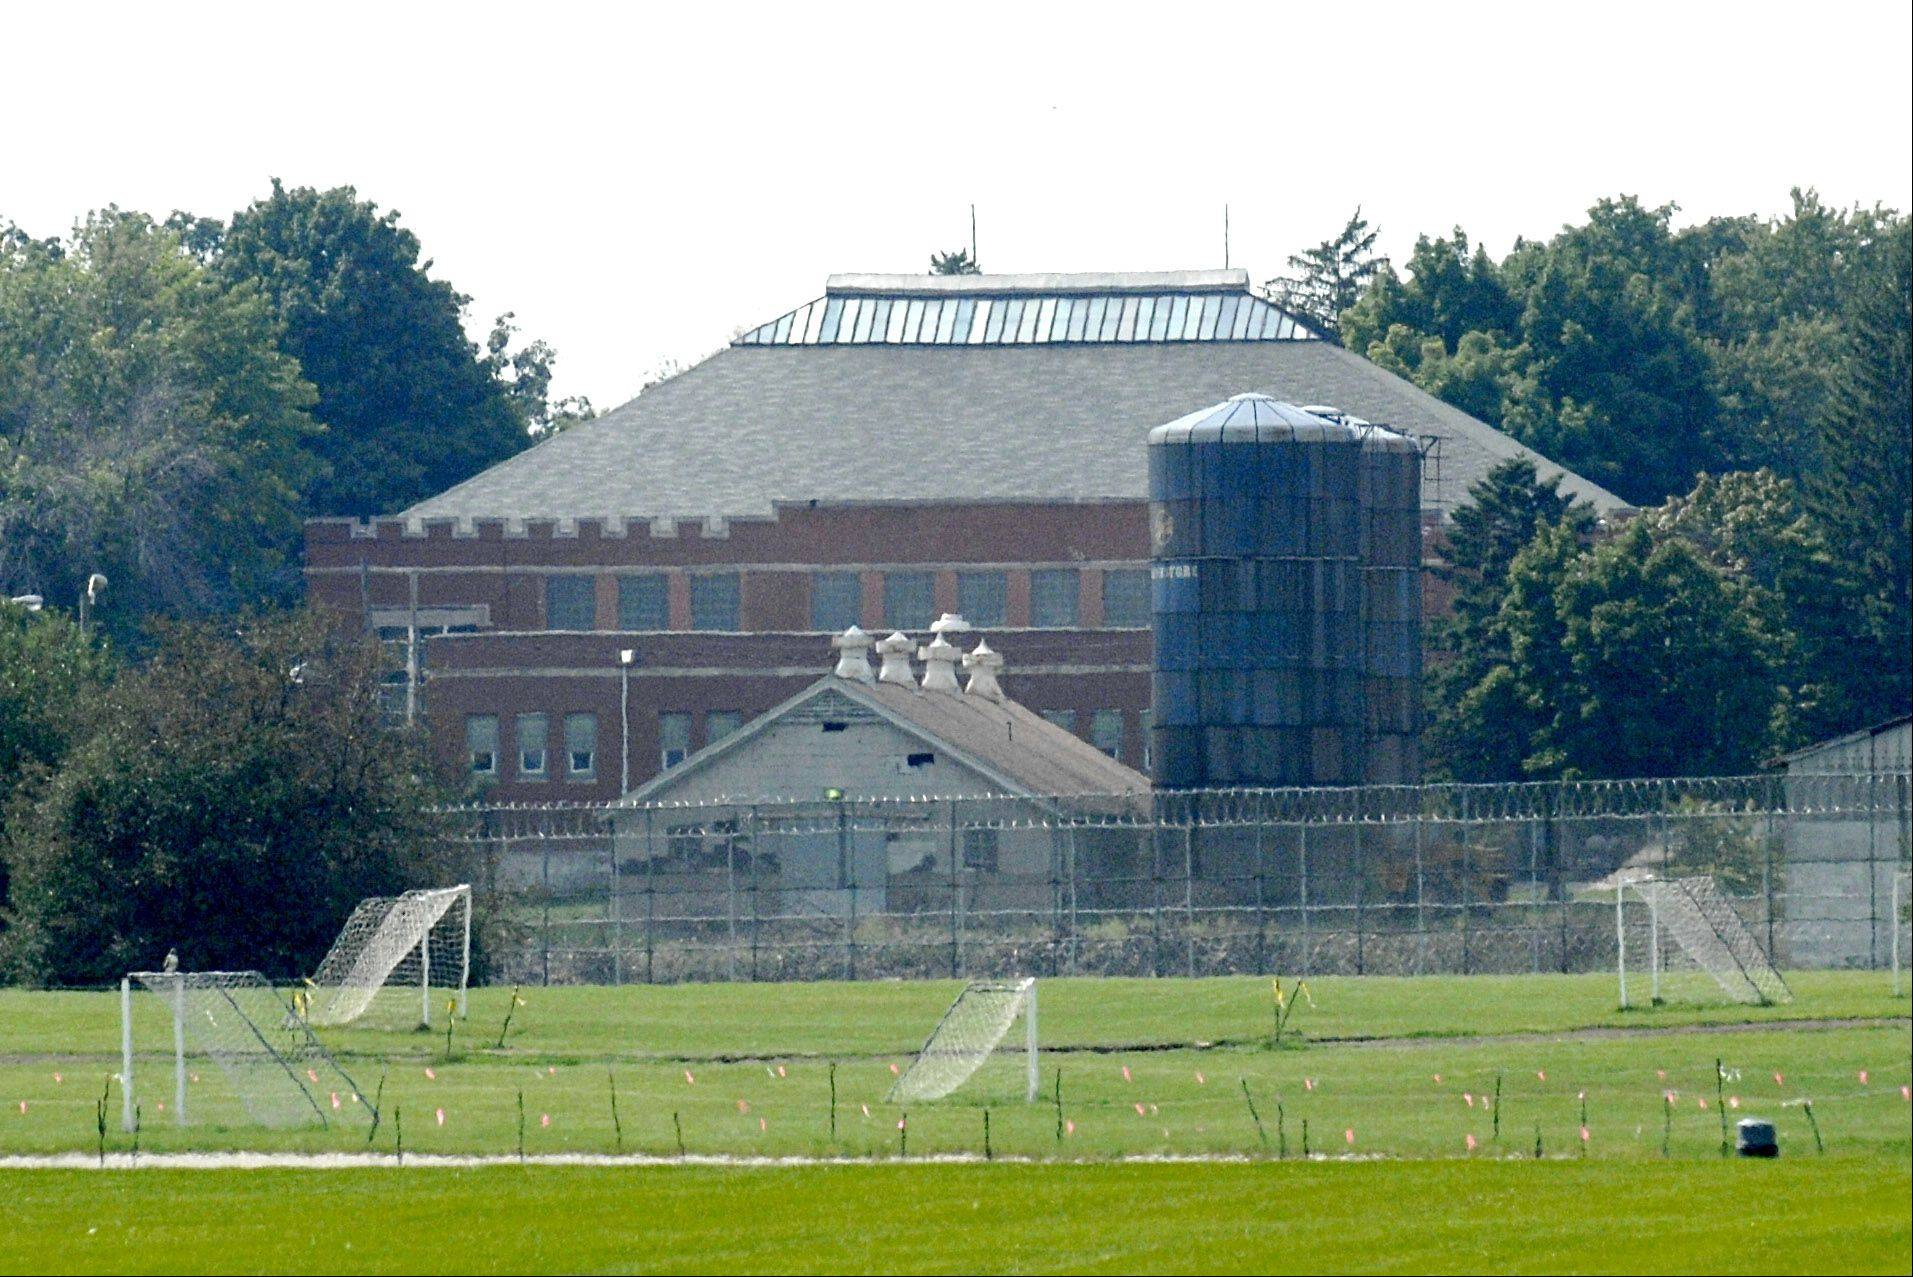 The Illinois Youth Center in St. Charles, seen from the soccer fields of neighboring Westside Community Park.